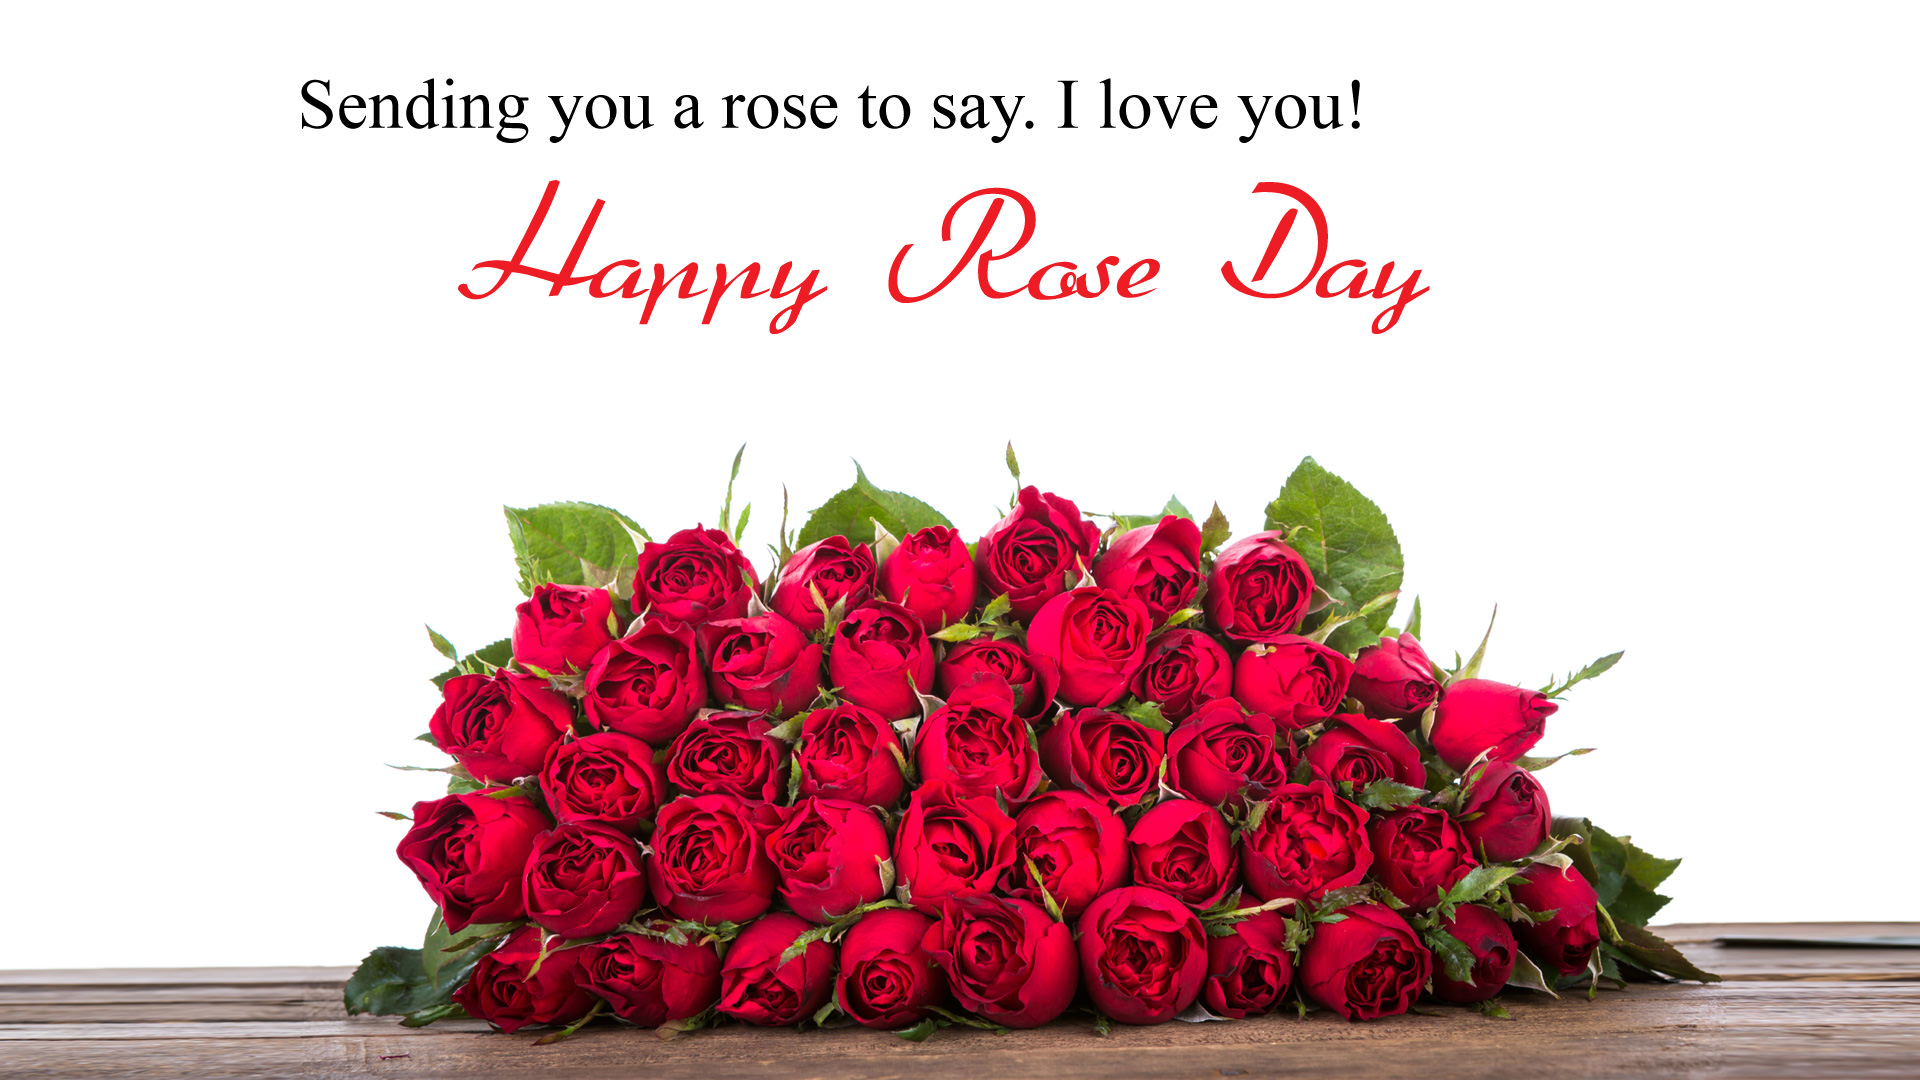 I Love You Rose Day Wallpaper